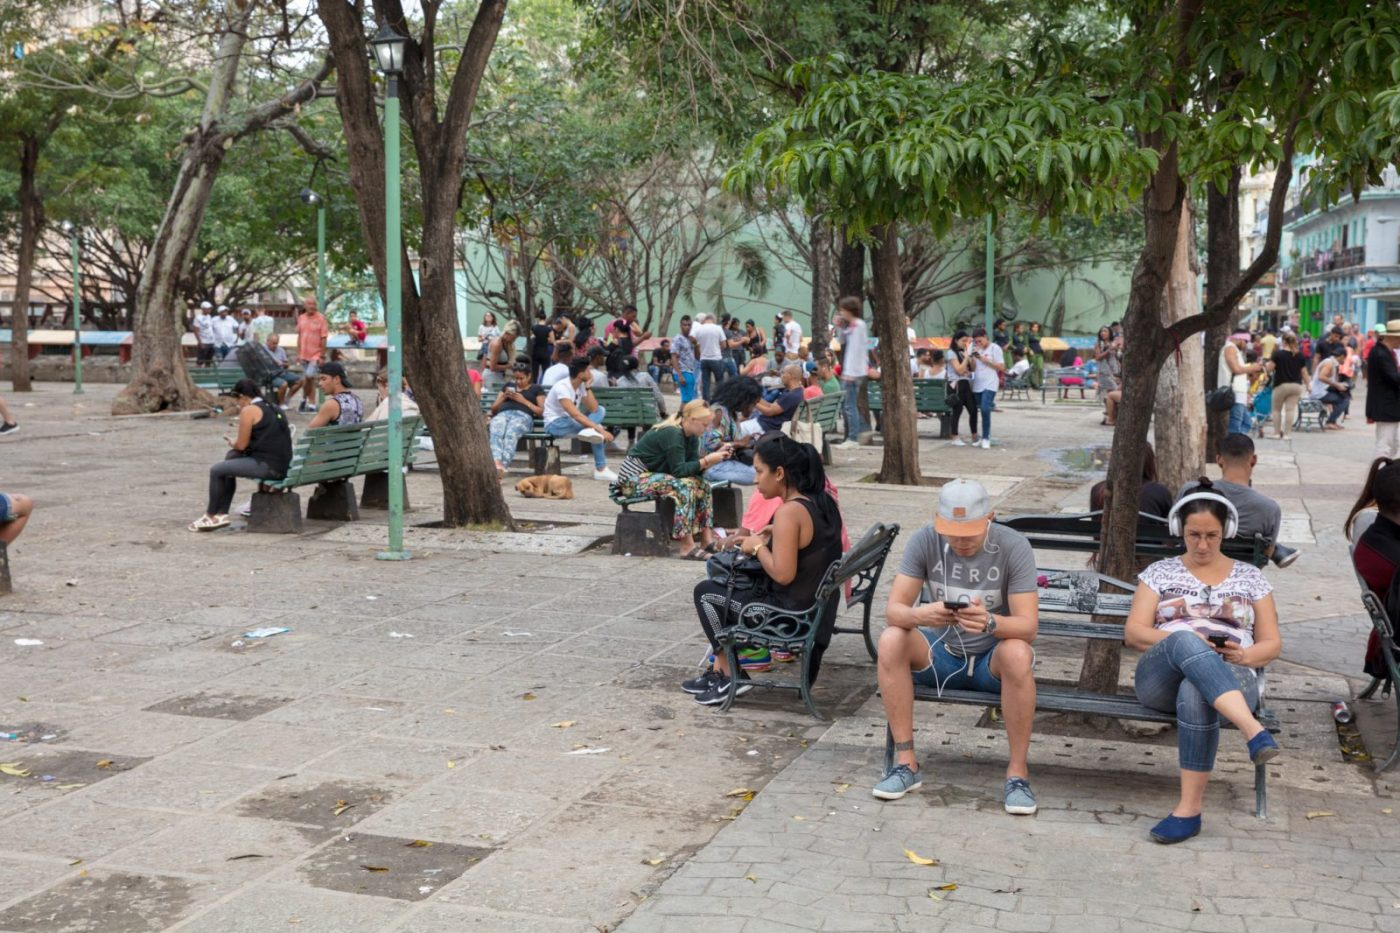 Internet in Cuba: Everyone busy on their phones at a wifi hotspot in Cuba. Photo by Duncan via Flickr CC.